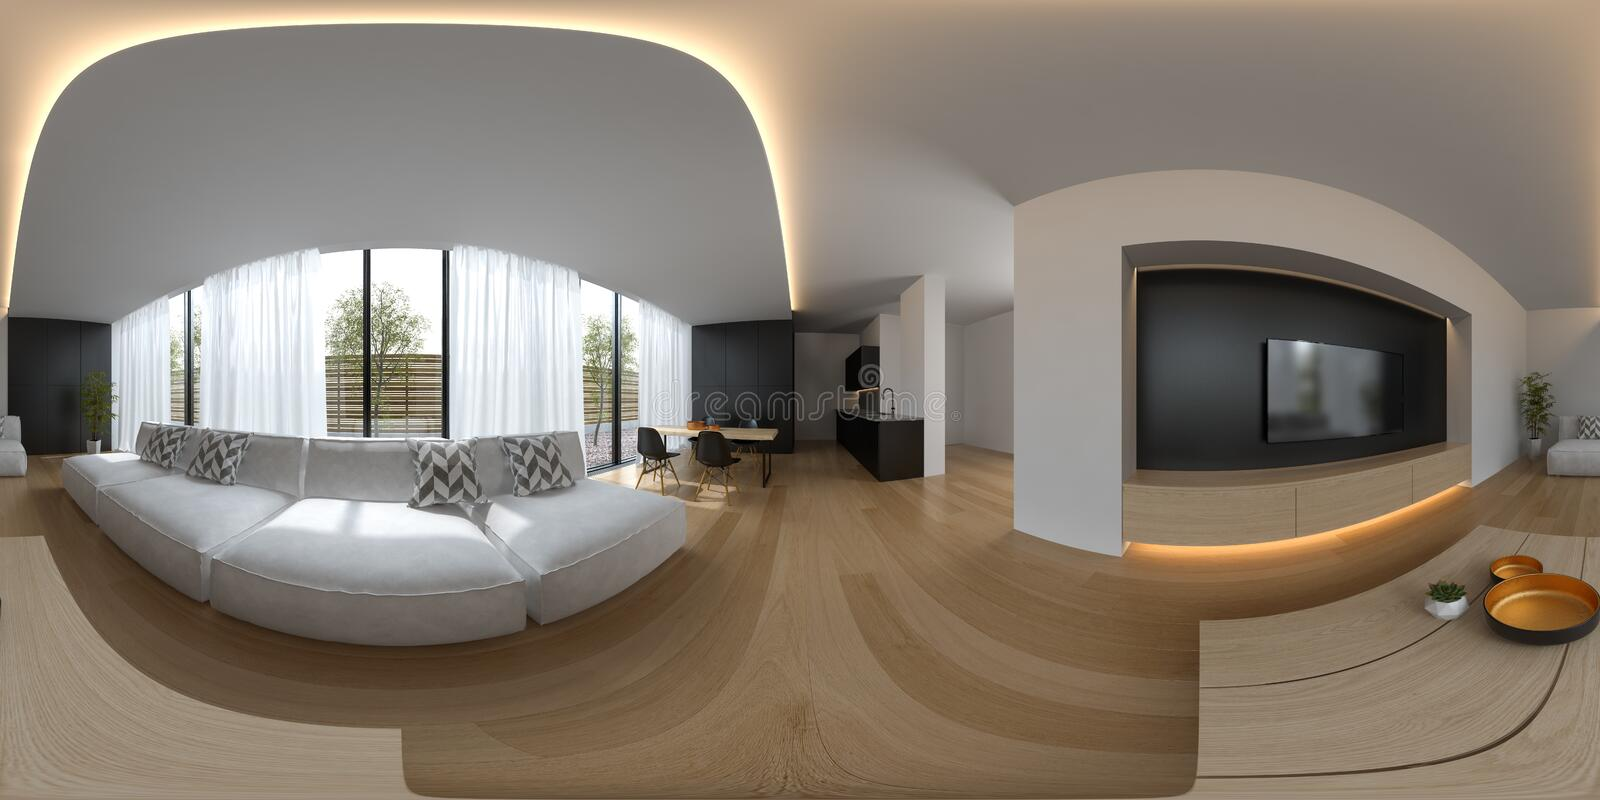 Spherical 360 panorama projection Scandinavian style interior design 3D rendering royalty free illustration